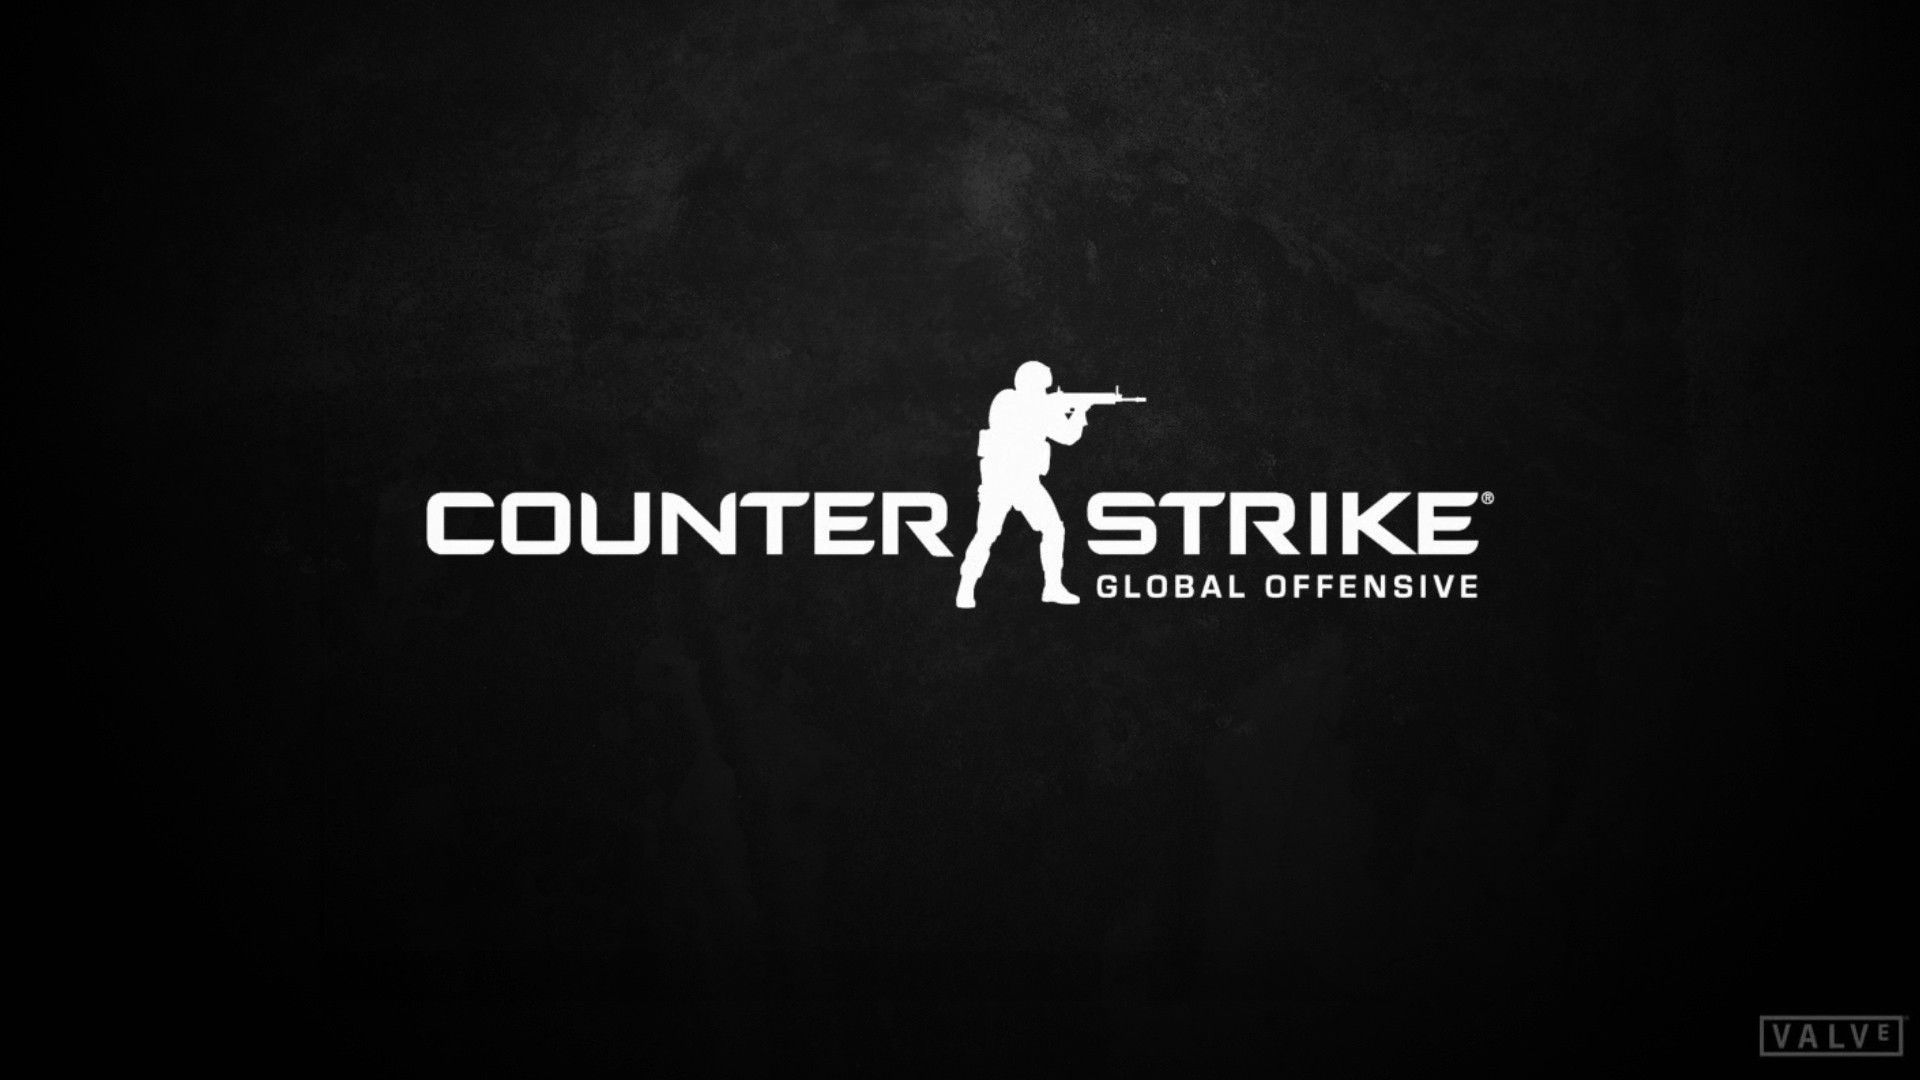 Video Games Counter Strike Counter Strike Global Offensive Shooter Wallpaper Counter Strike Offensive